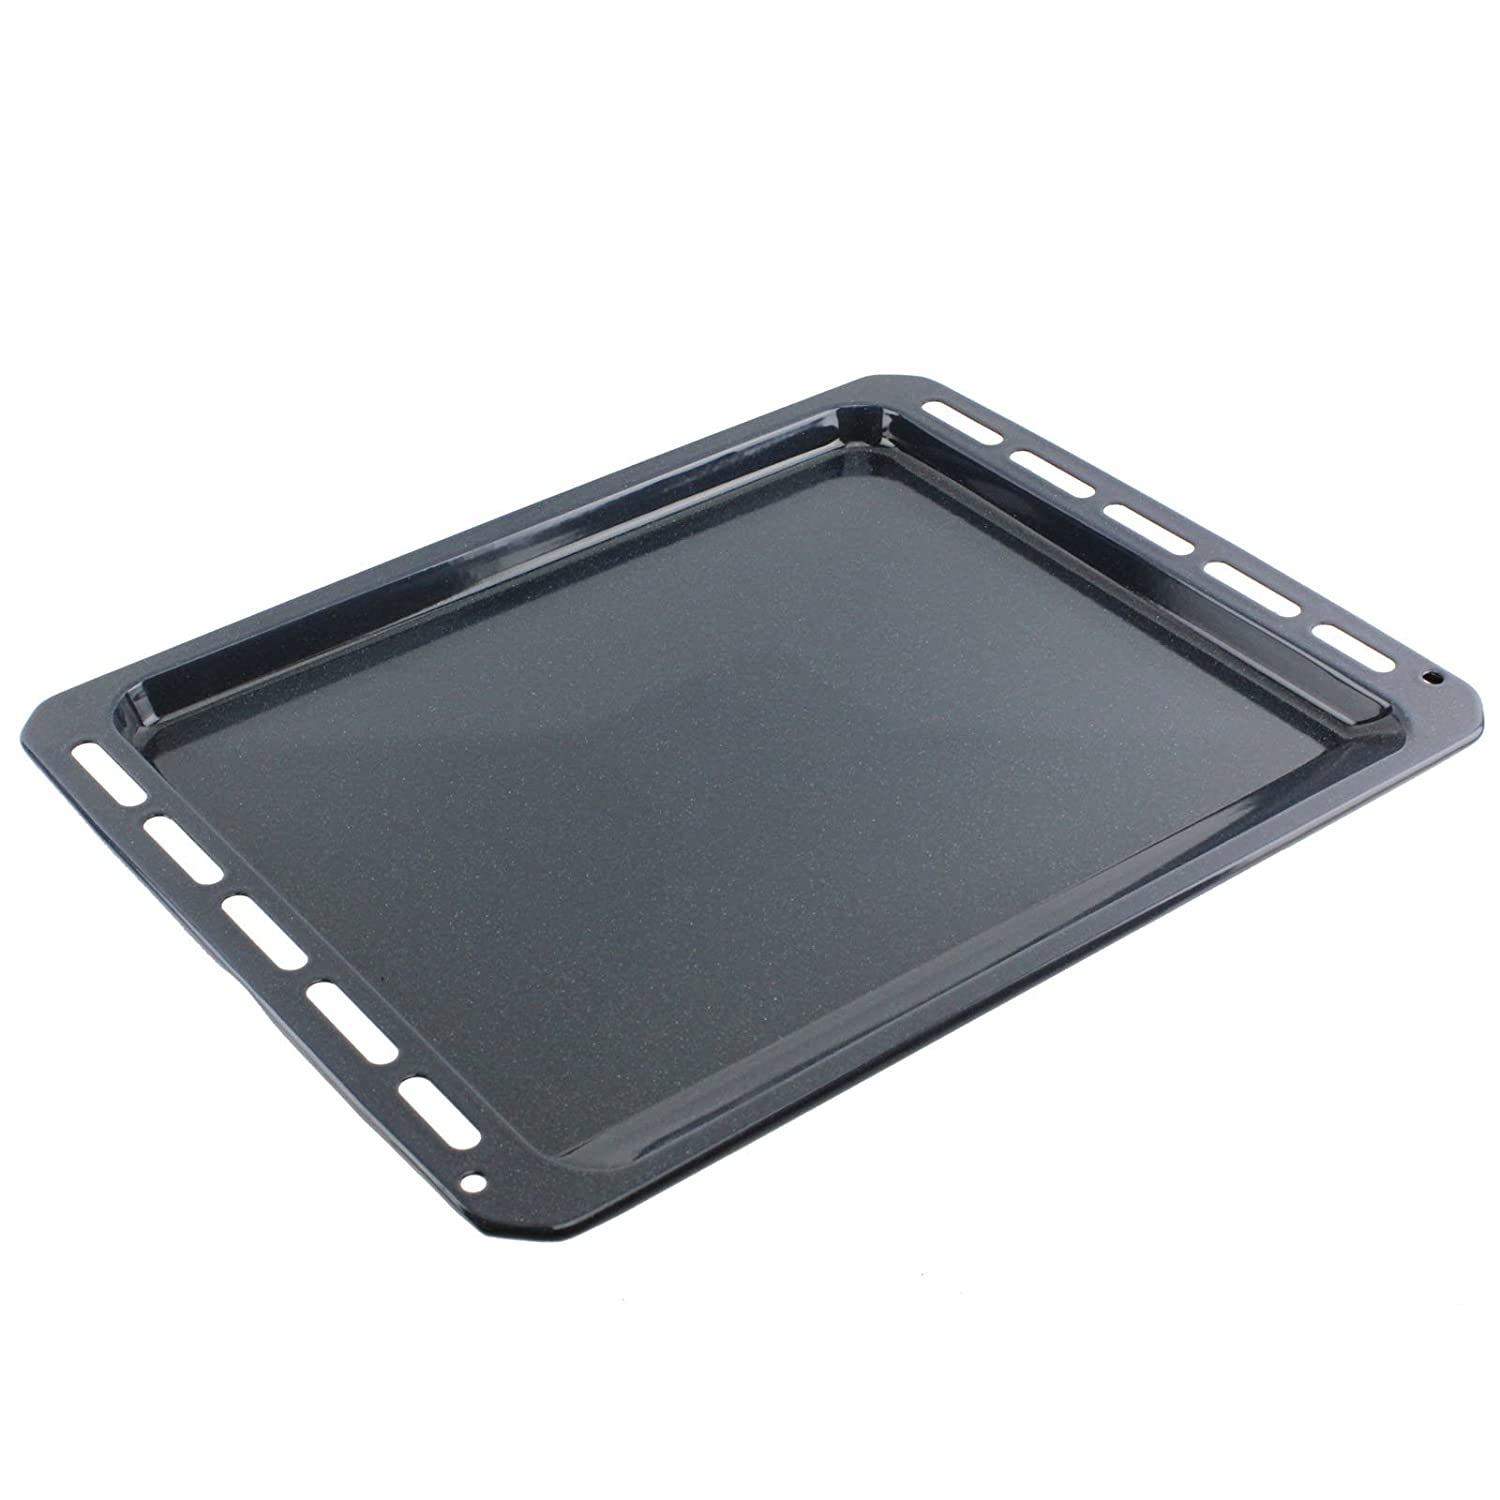 Samsung DG63-00012A - Tray Baking (A) Regular